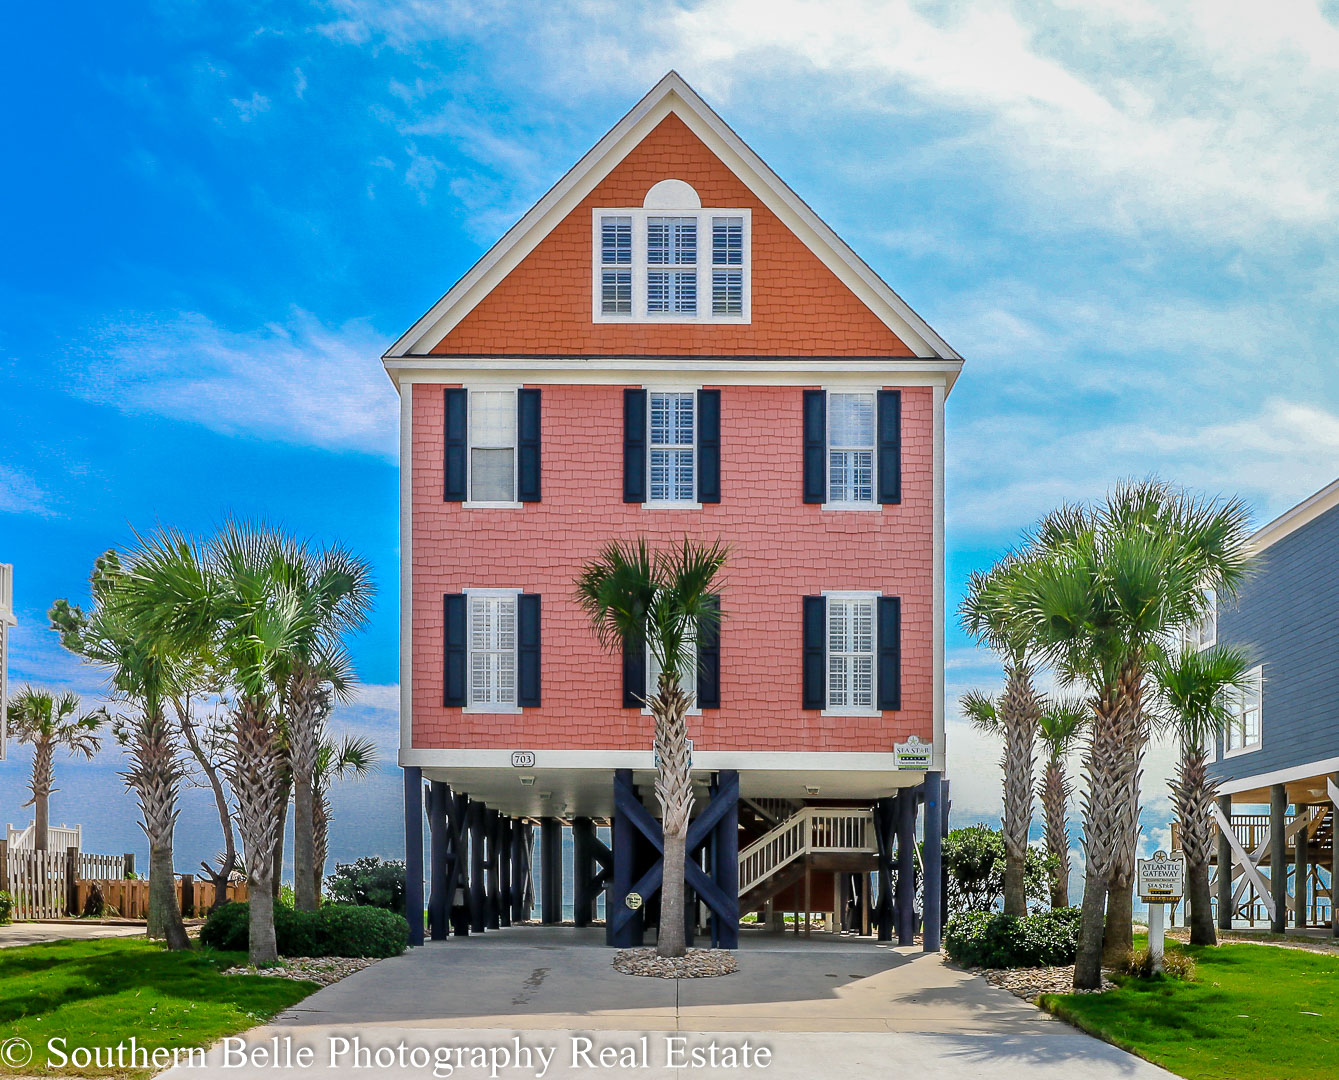 Pet Friendly Hotels In South Carolina Tripswithpets Com